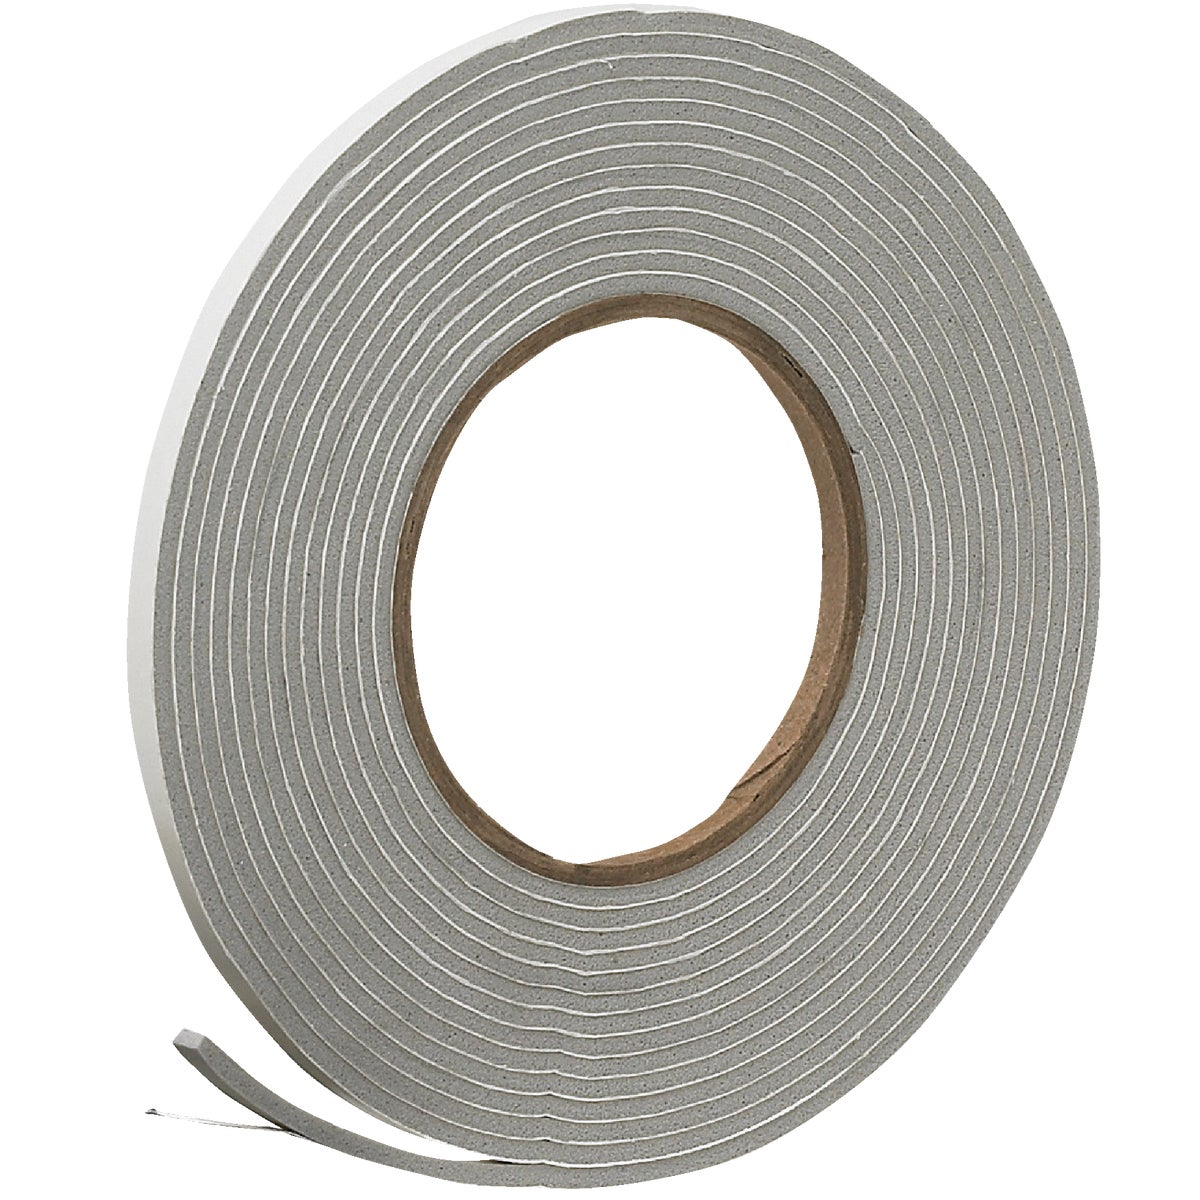 "1/4X1/8""X17' PVC TAPE - V442HDI by Thermwell Prods Co"